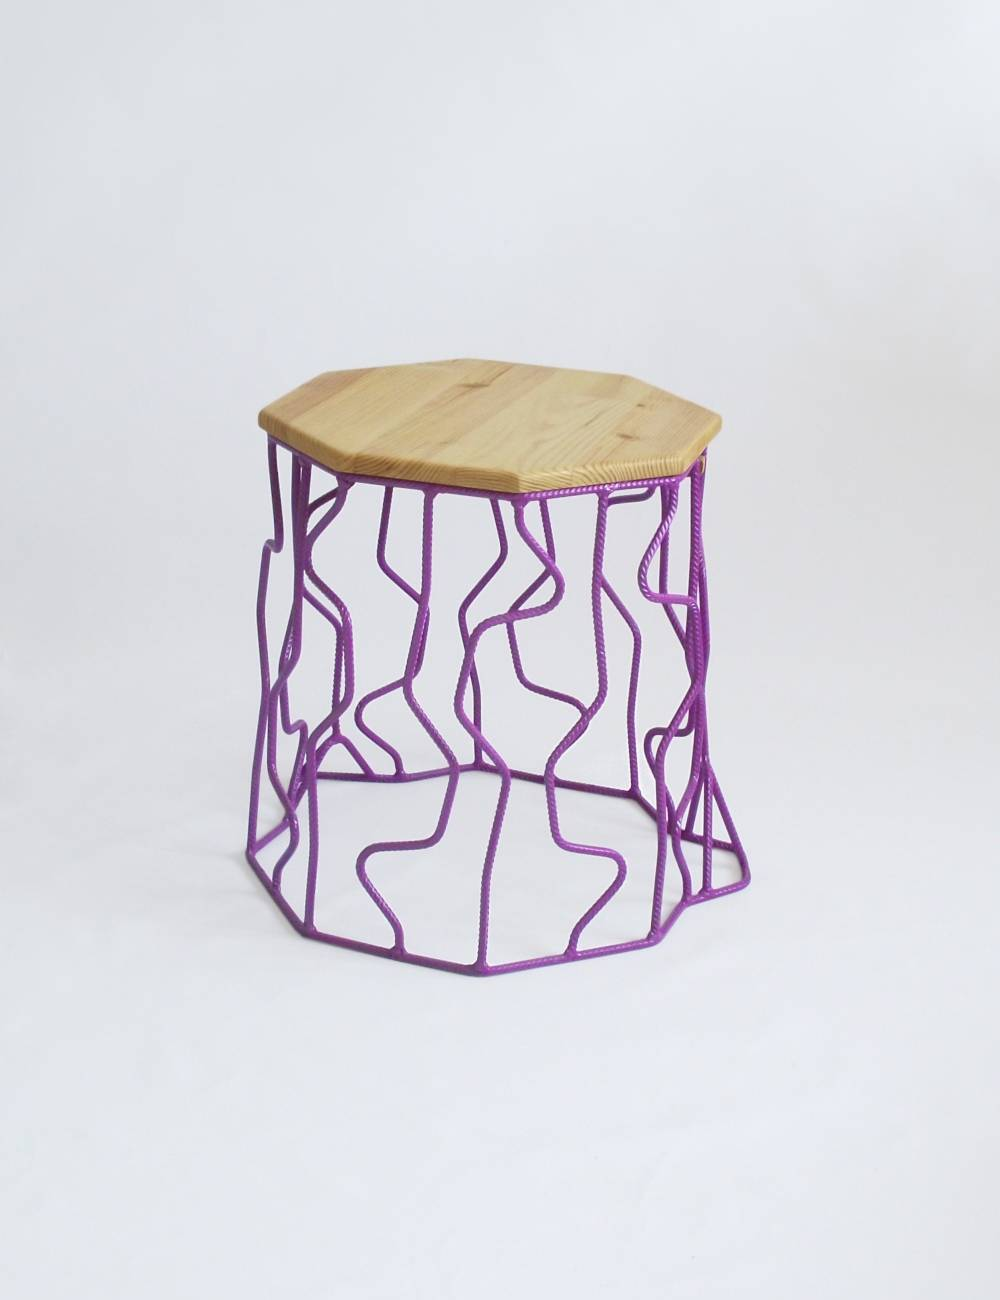 Wired stump stool